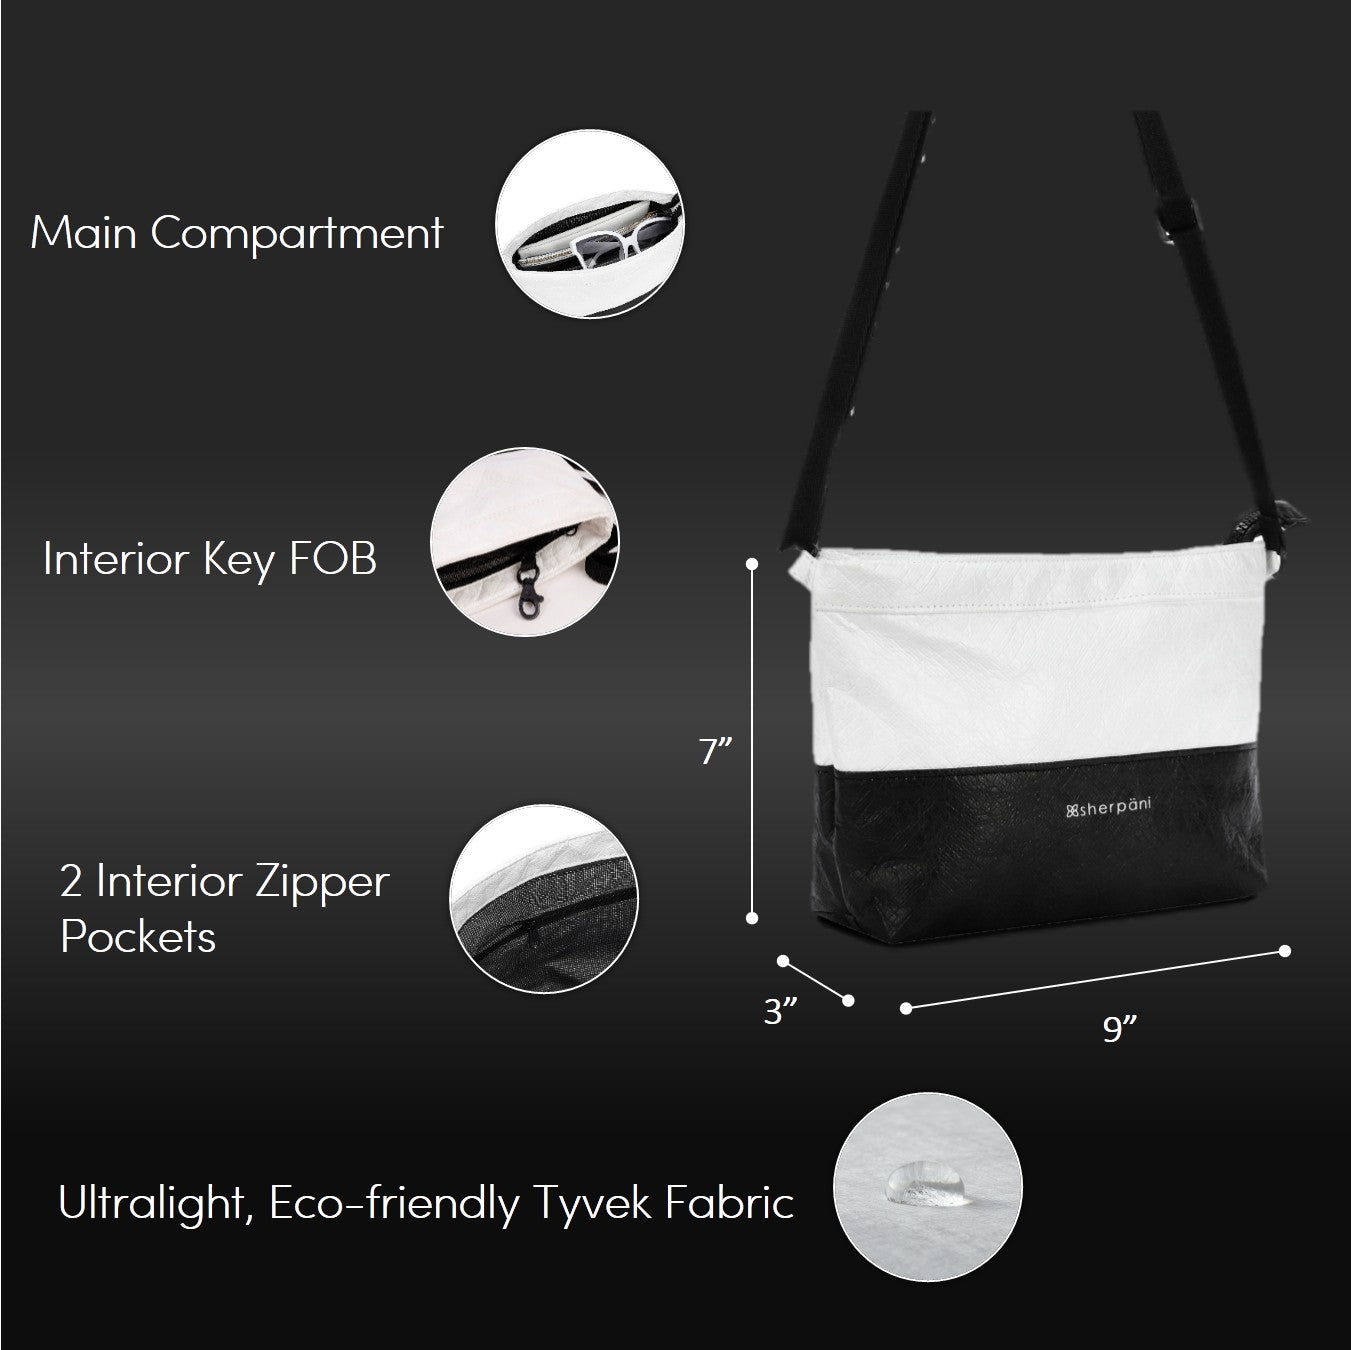 Black & White Convertible Mini Crossbody and Wristlet (dimensions and features) made with tyvek fabric